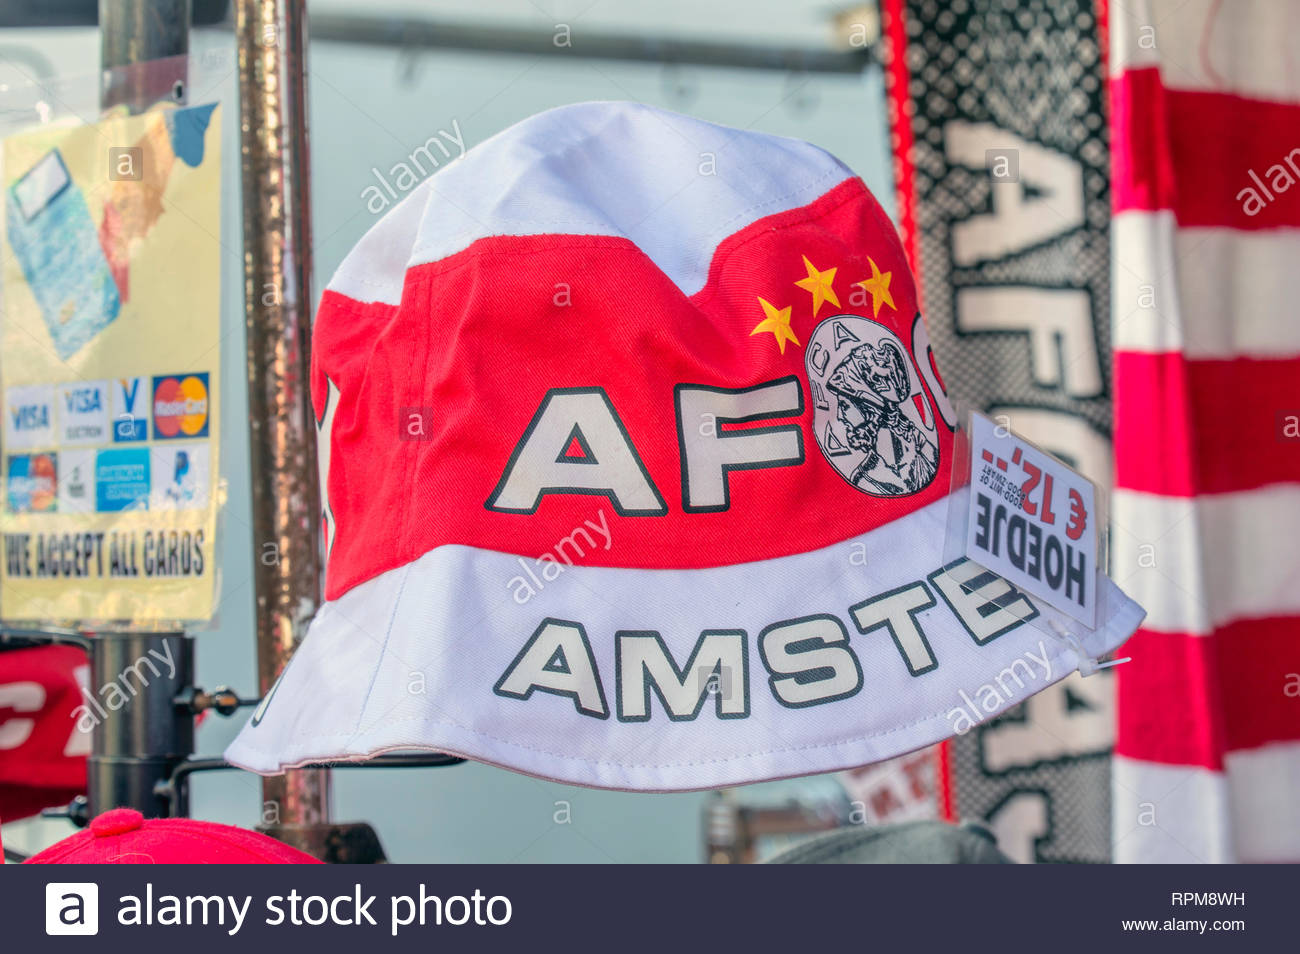 c96ab4f0d7e Merchandising Hat From The AFC Ajax Football Team At Amsterdam The  Netherlands 2019 - Stock Image